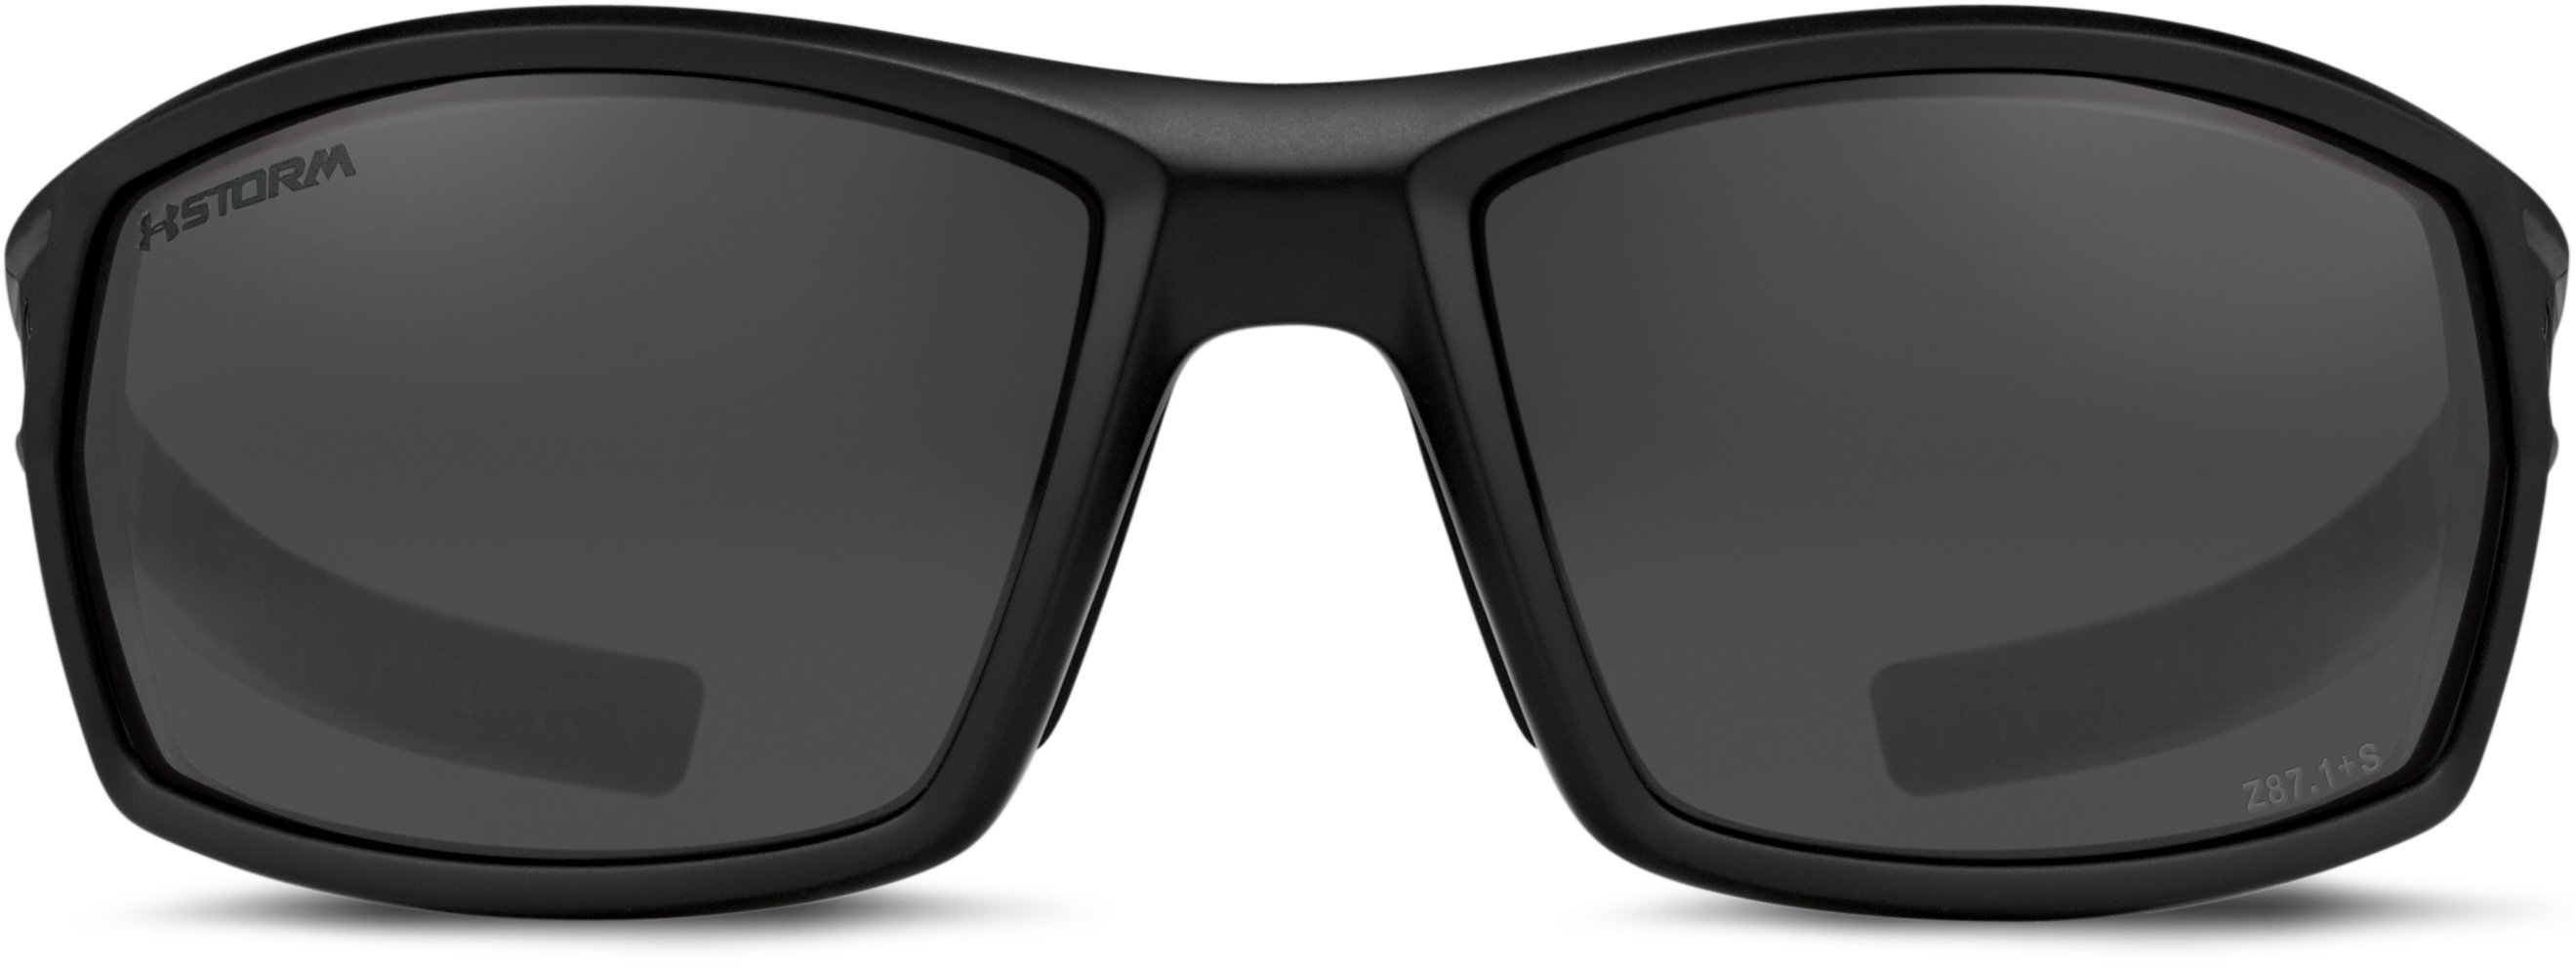 UA Ranger Storm Polarized Sunglasses, Satin Black, undefined